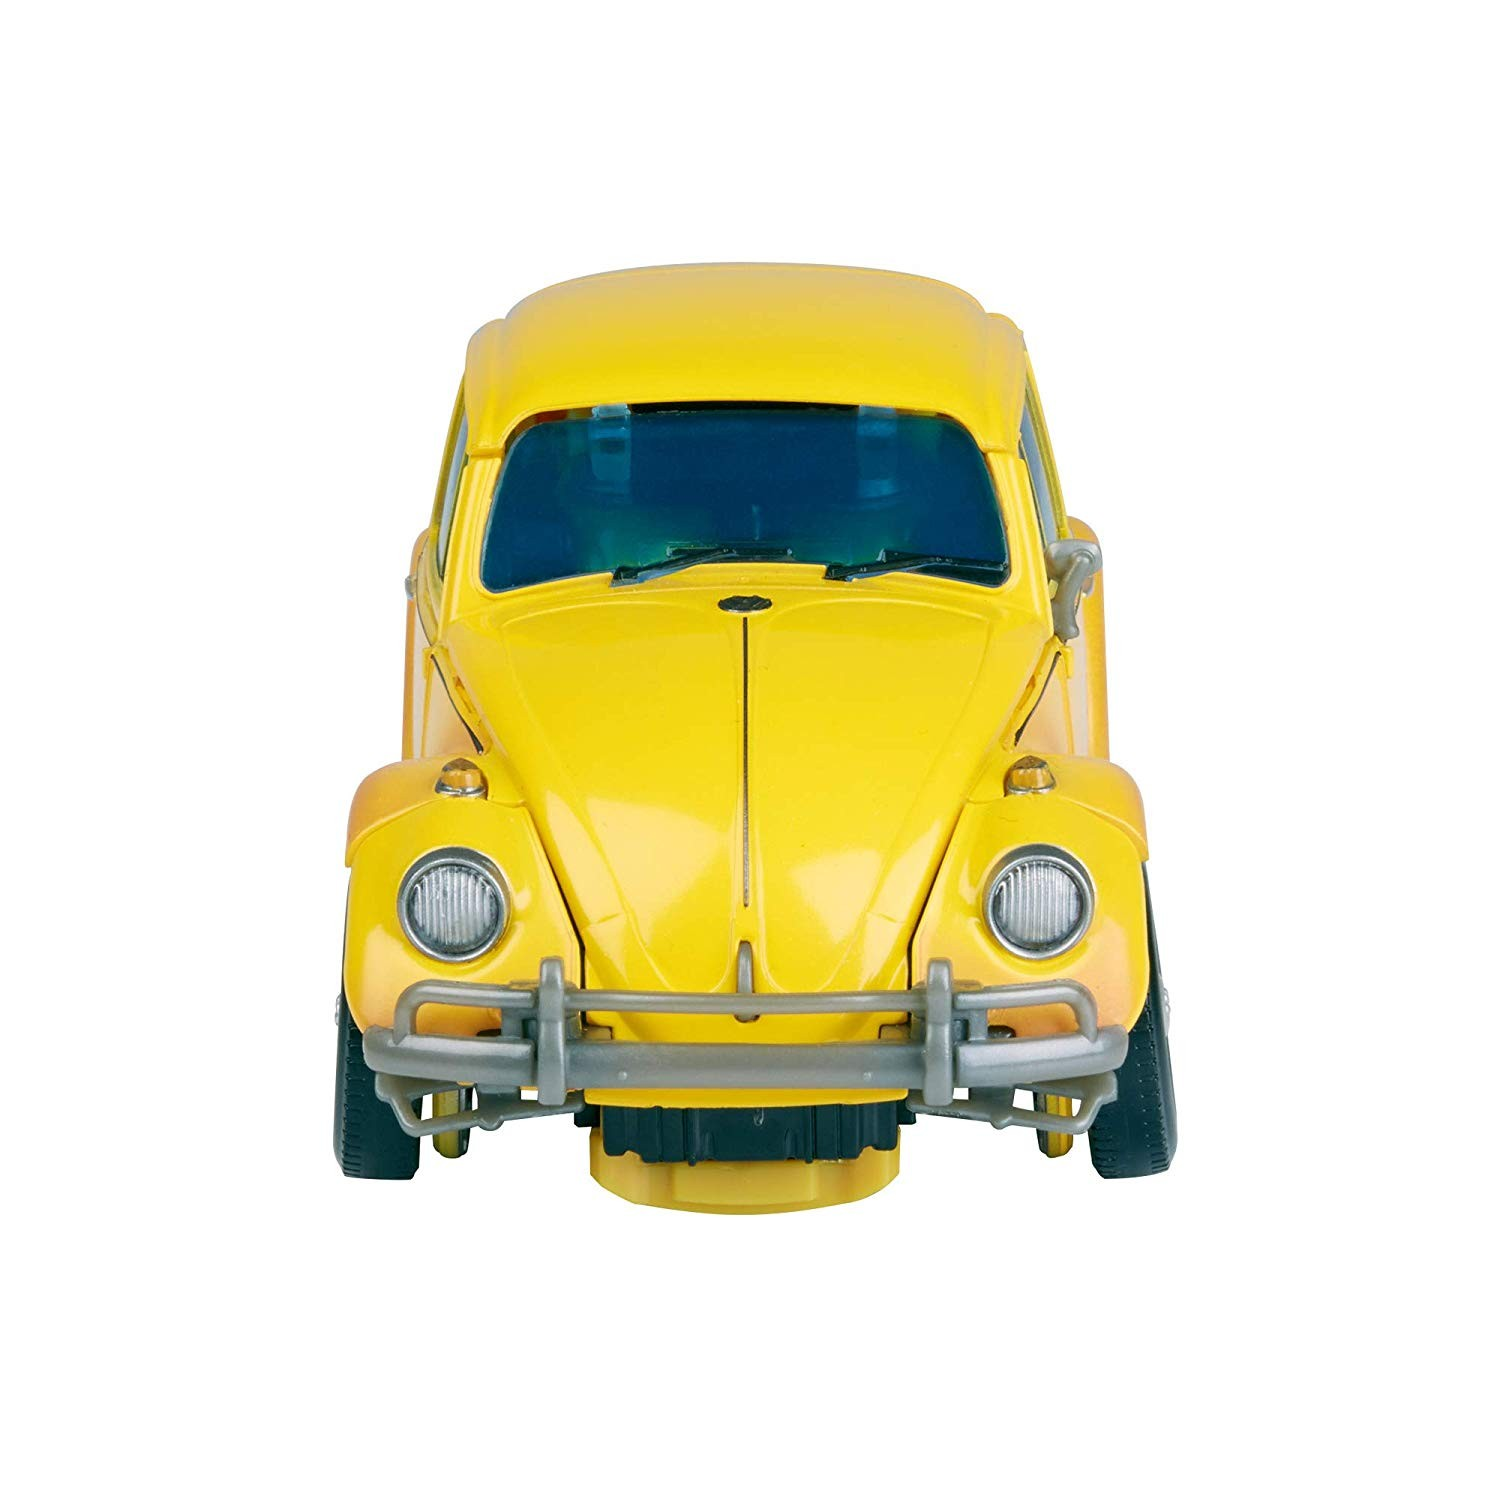 Transformers News: Amazon.com pre-orders for Masterpiece MPM-7 Bumblebee now available #JoinTheBuzz @BumblebeeMovie